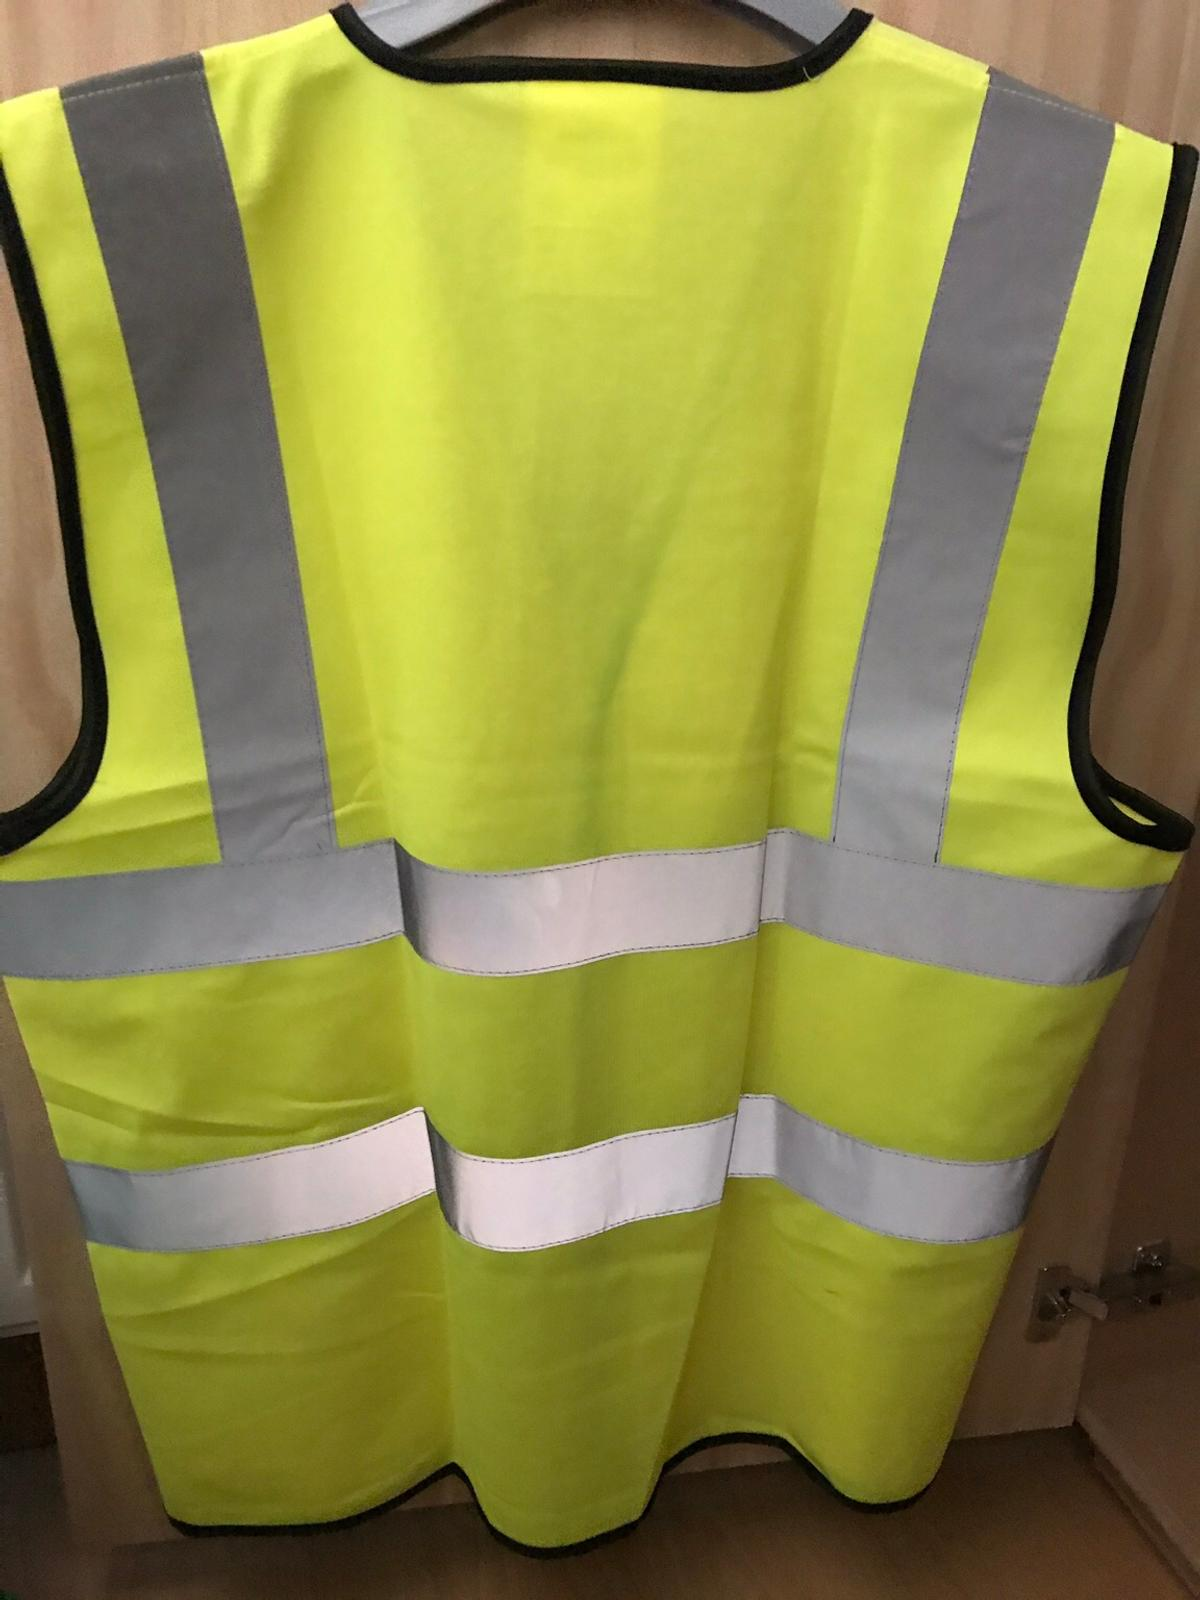 Brand new Hi- Vis yellow vests with reflective stripes. Size Large or XXL available £2.99 each. great for cycling, running, walking, working etc on a dusk/ dark evening Collection from Bacton or If you local I can deliver